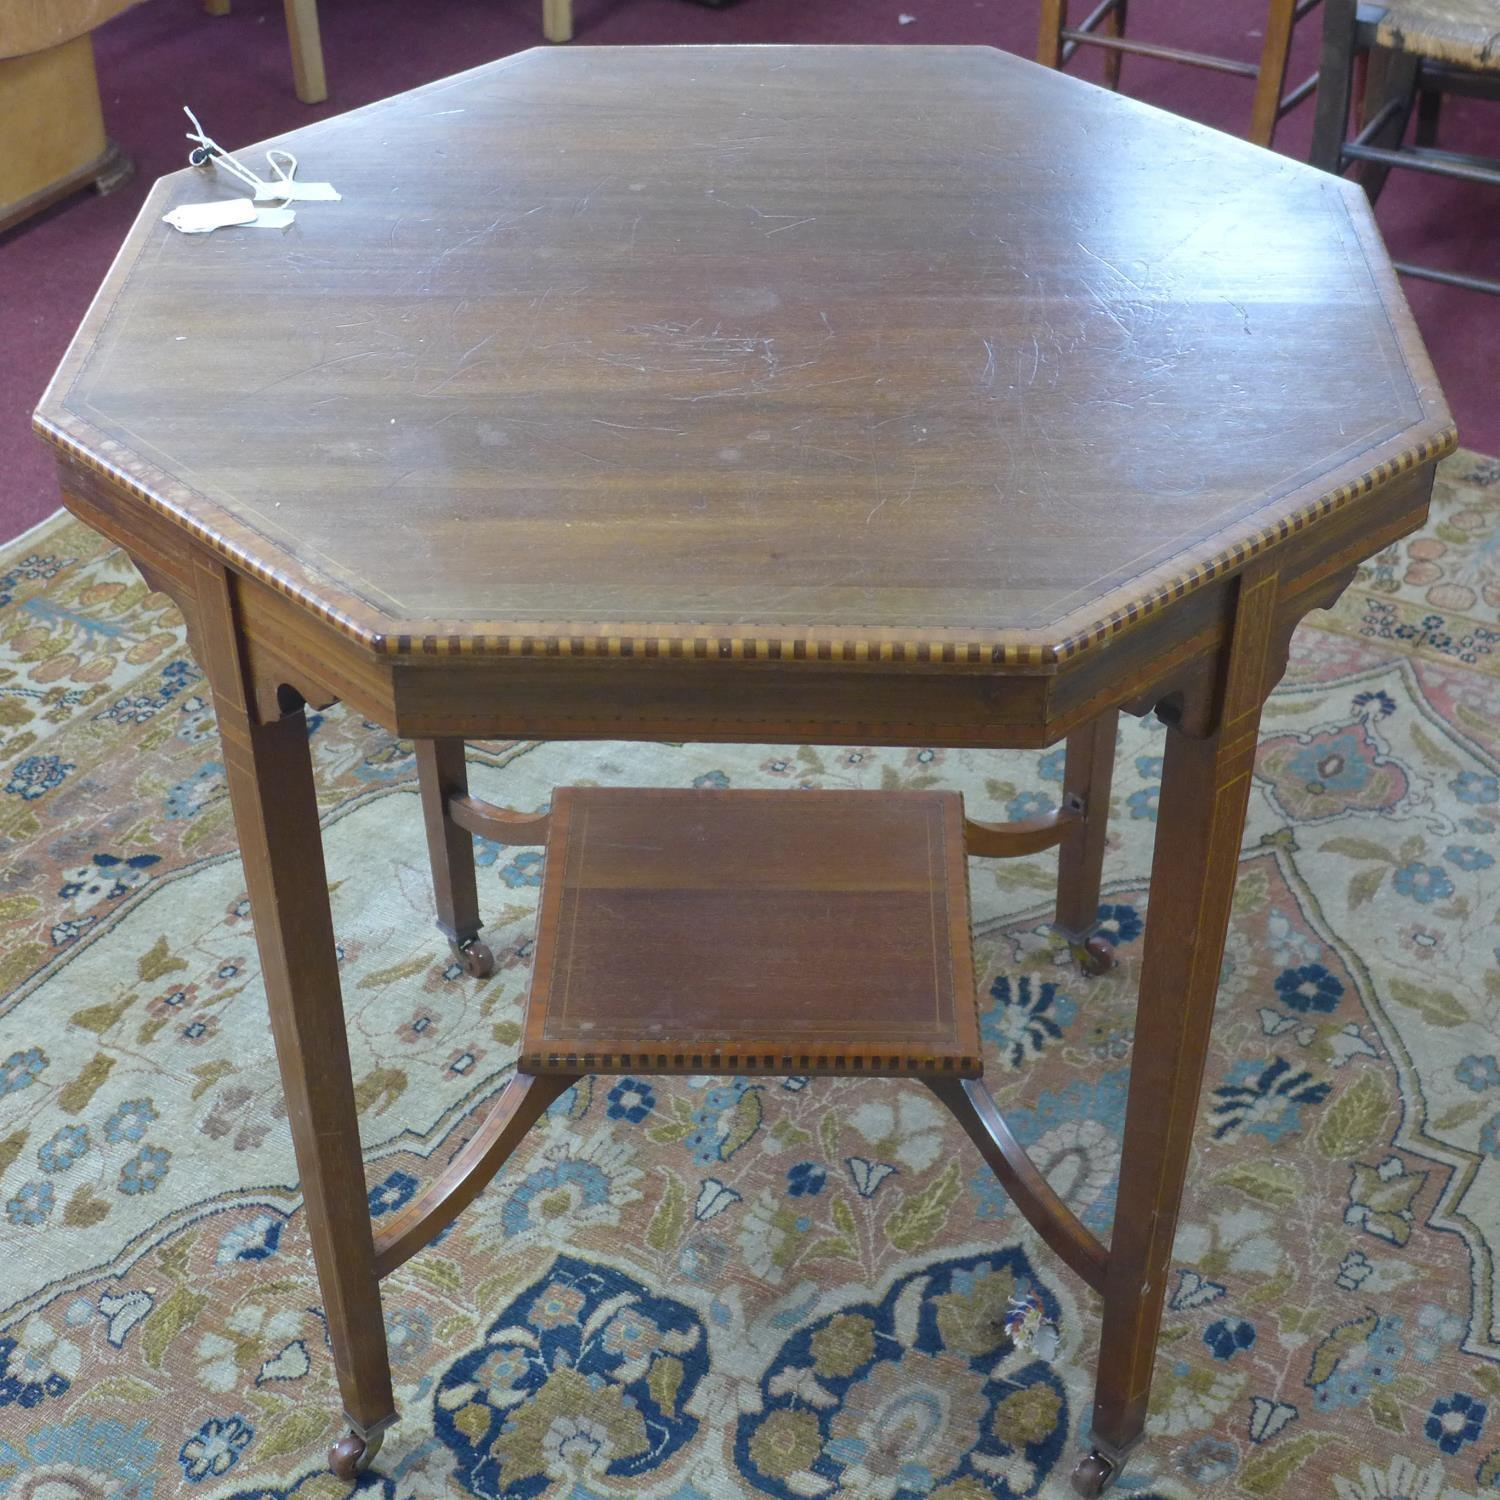 Lot 152 - An Edwardian mahogany octagonal inlaid occasional table, with undertier, raised on tapering legs and